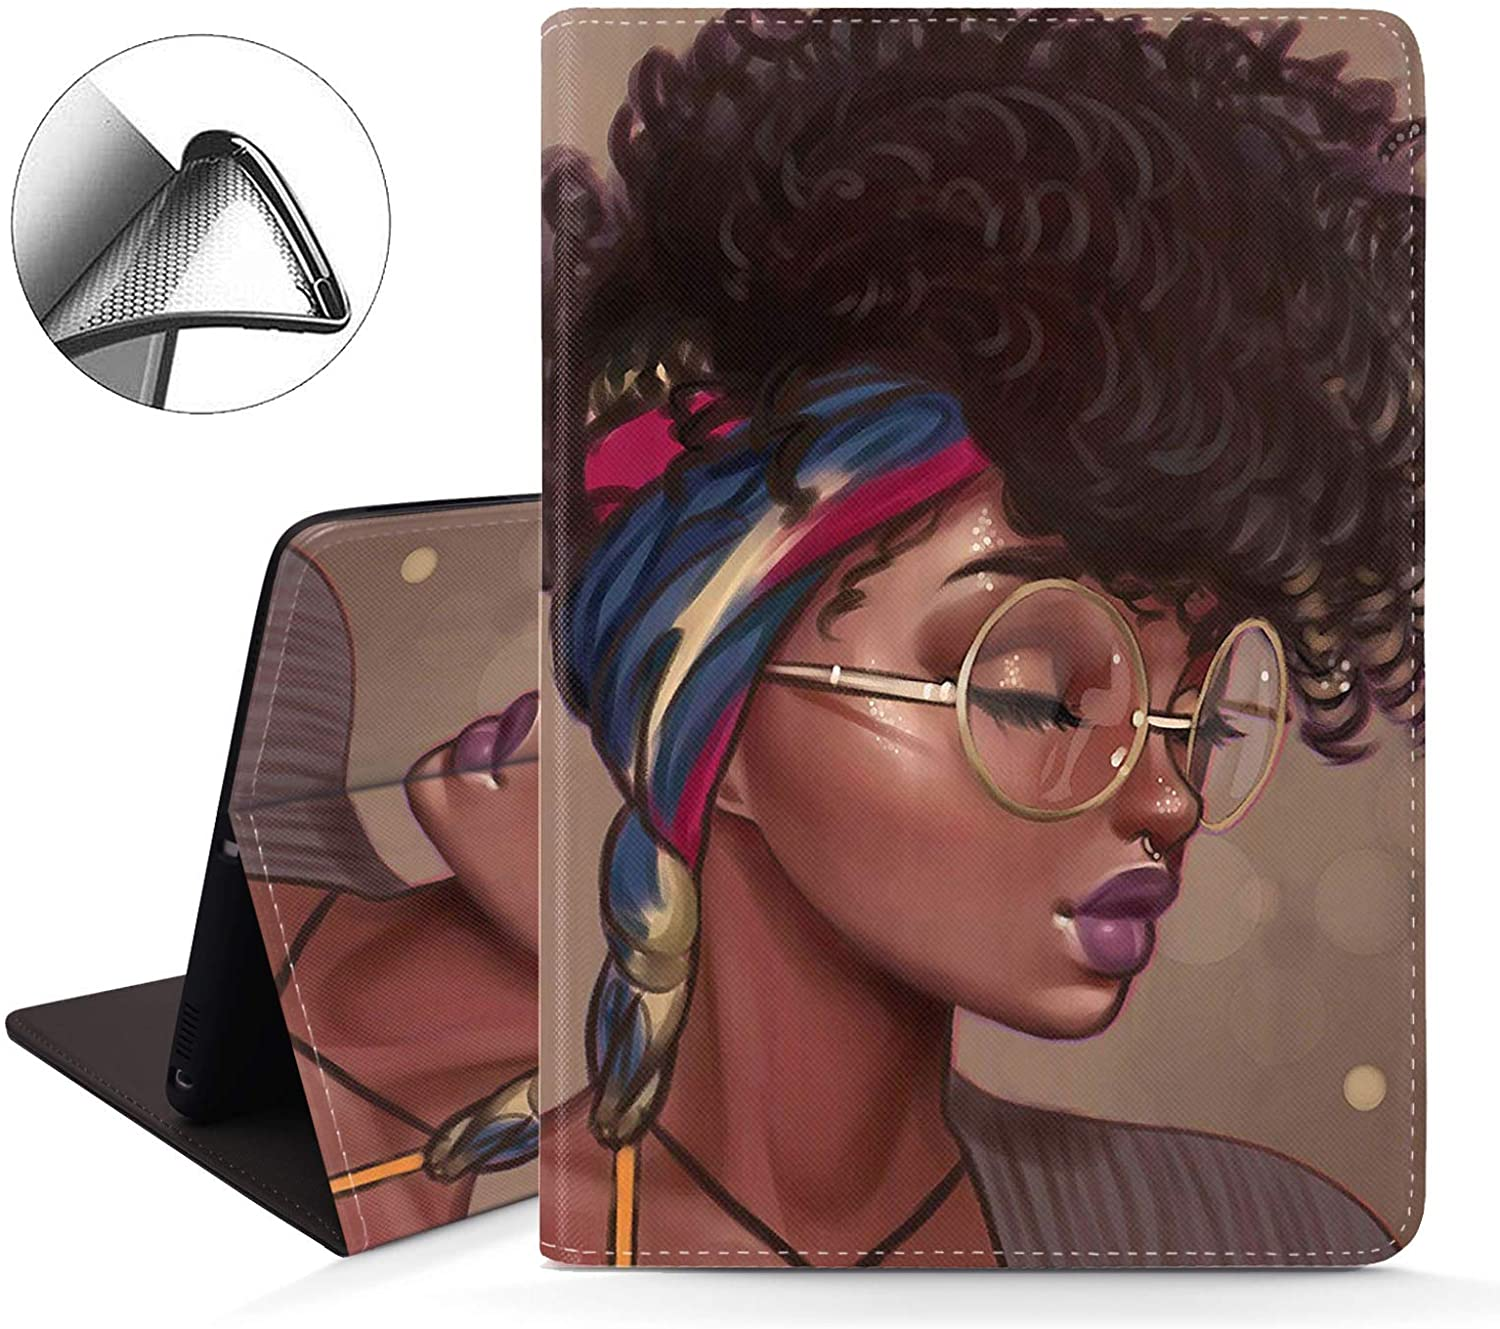 iPad 9.7 inch 2018/2017 Case,Pro 9.7 Case,iPad Air 2 Case,iPad Air Case, Slim Soft Rubber Back Shockproof Protective Case with Auto Wake/Sleep for iPad 5th/6th Gen,African American Women